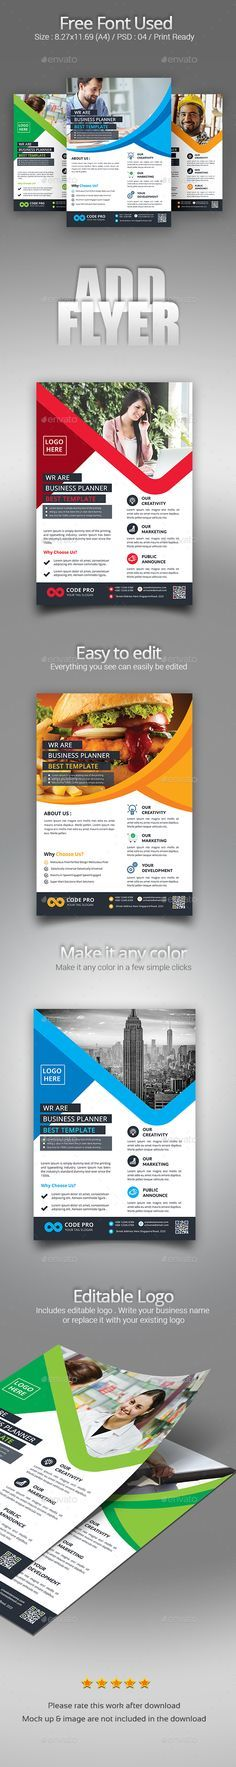 Clean \ Modern Corporate Flyer Template Them, Technology and Offices - web flyer template